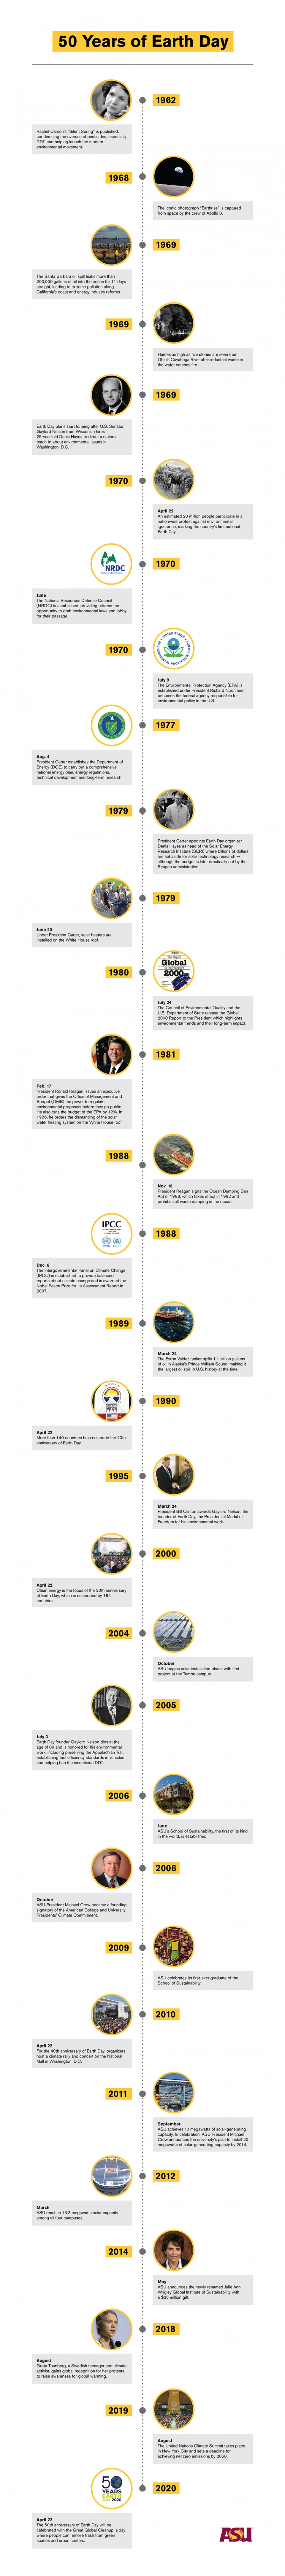 Earth Day timeline